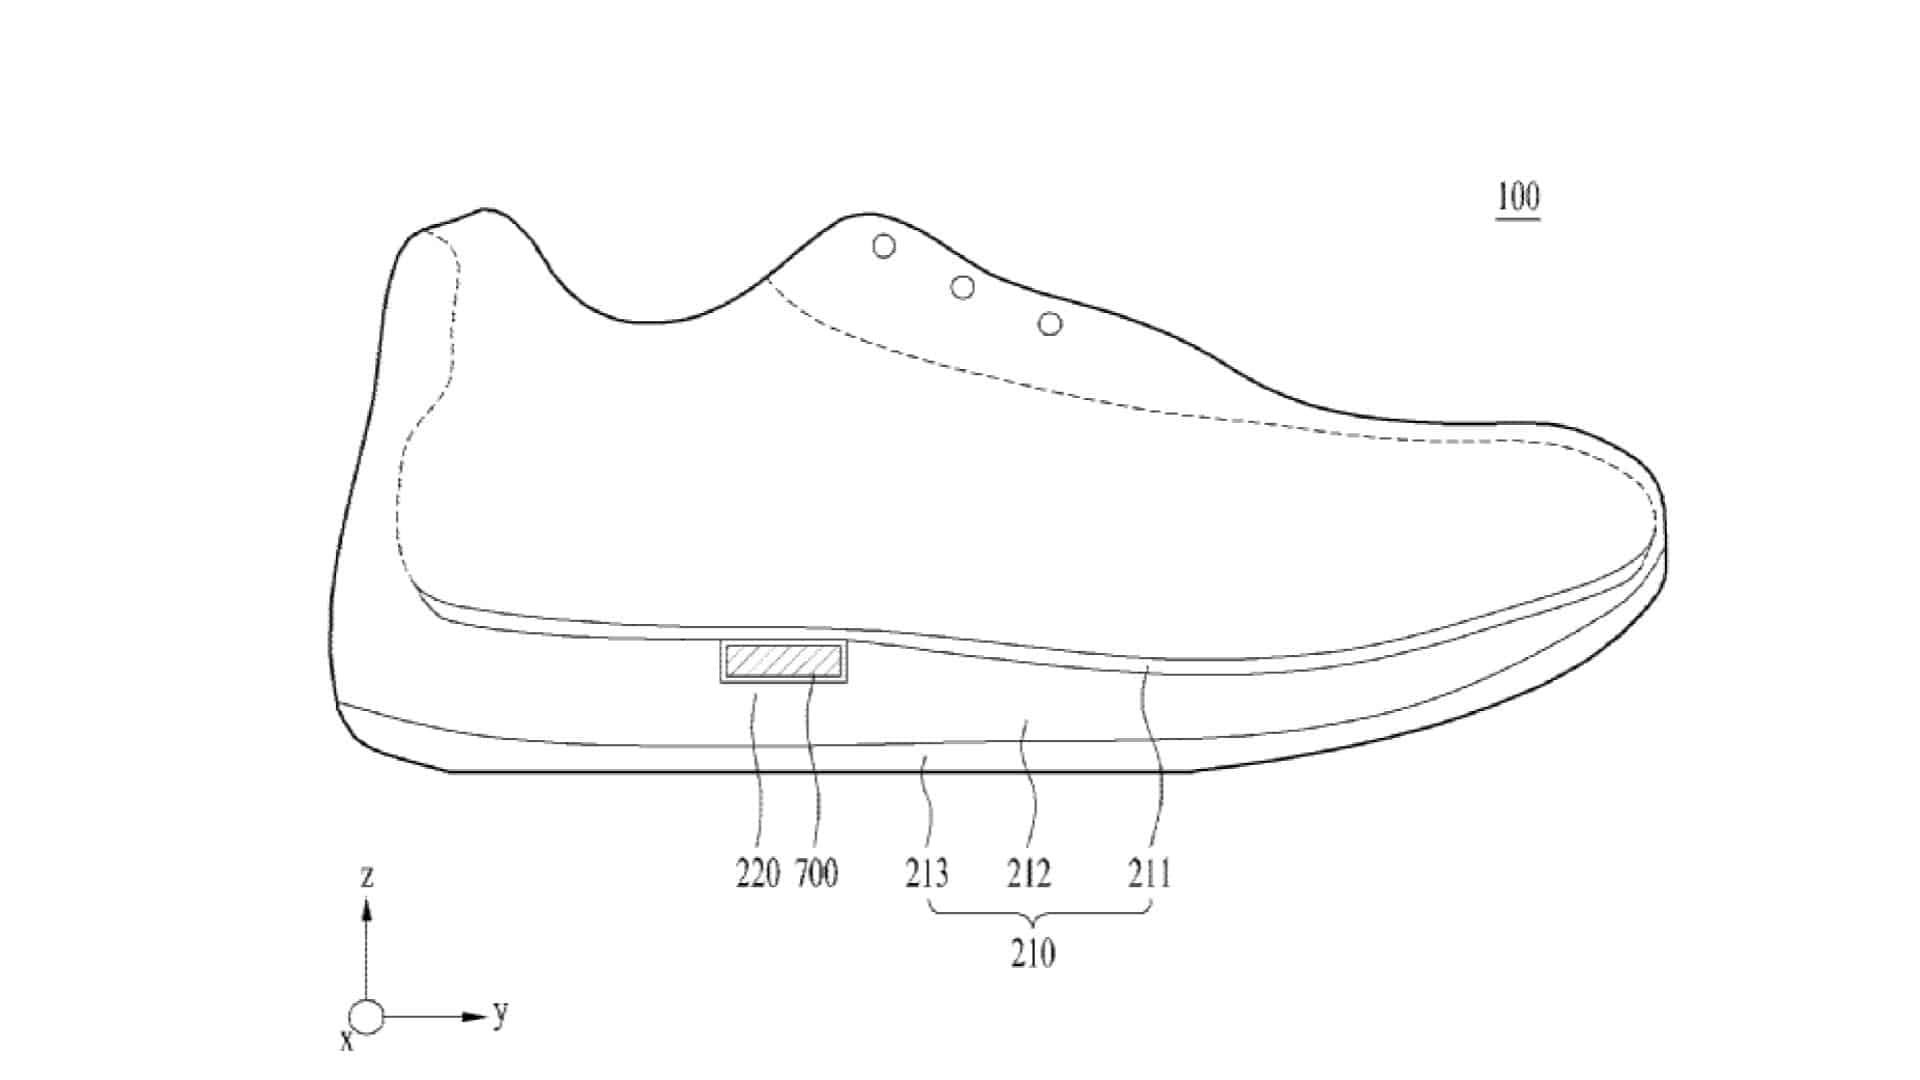 LG Wants To Make Your Shoes Smart, According To New Patent